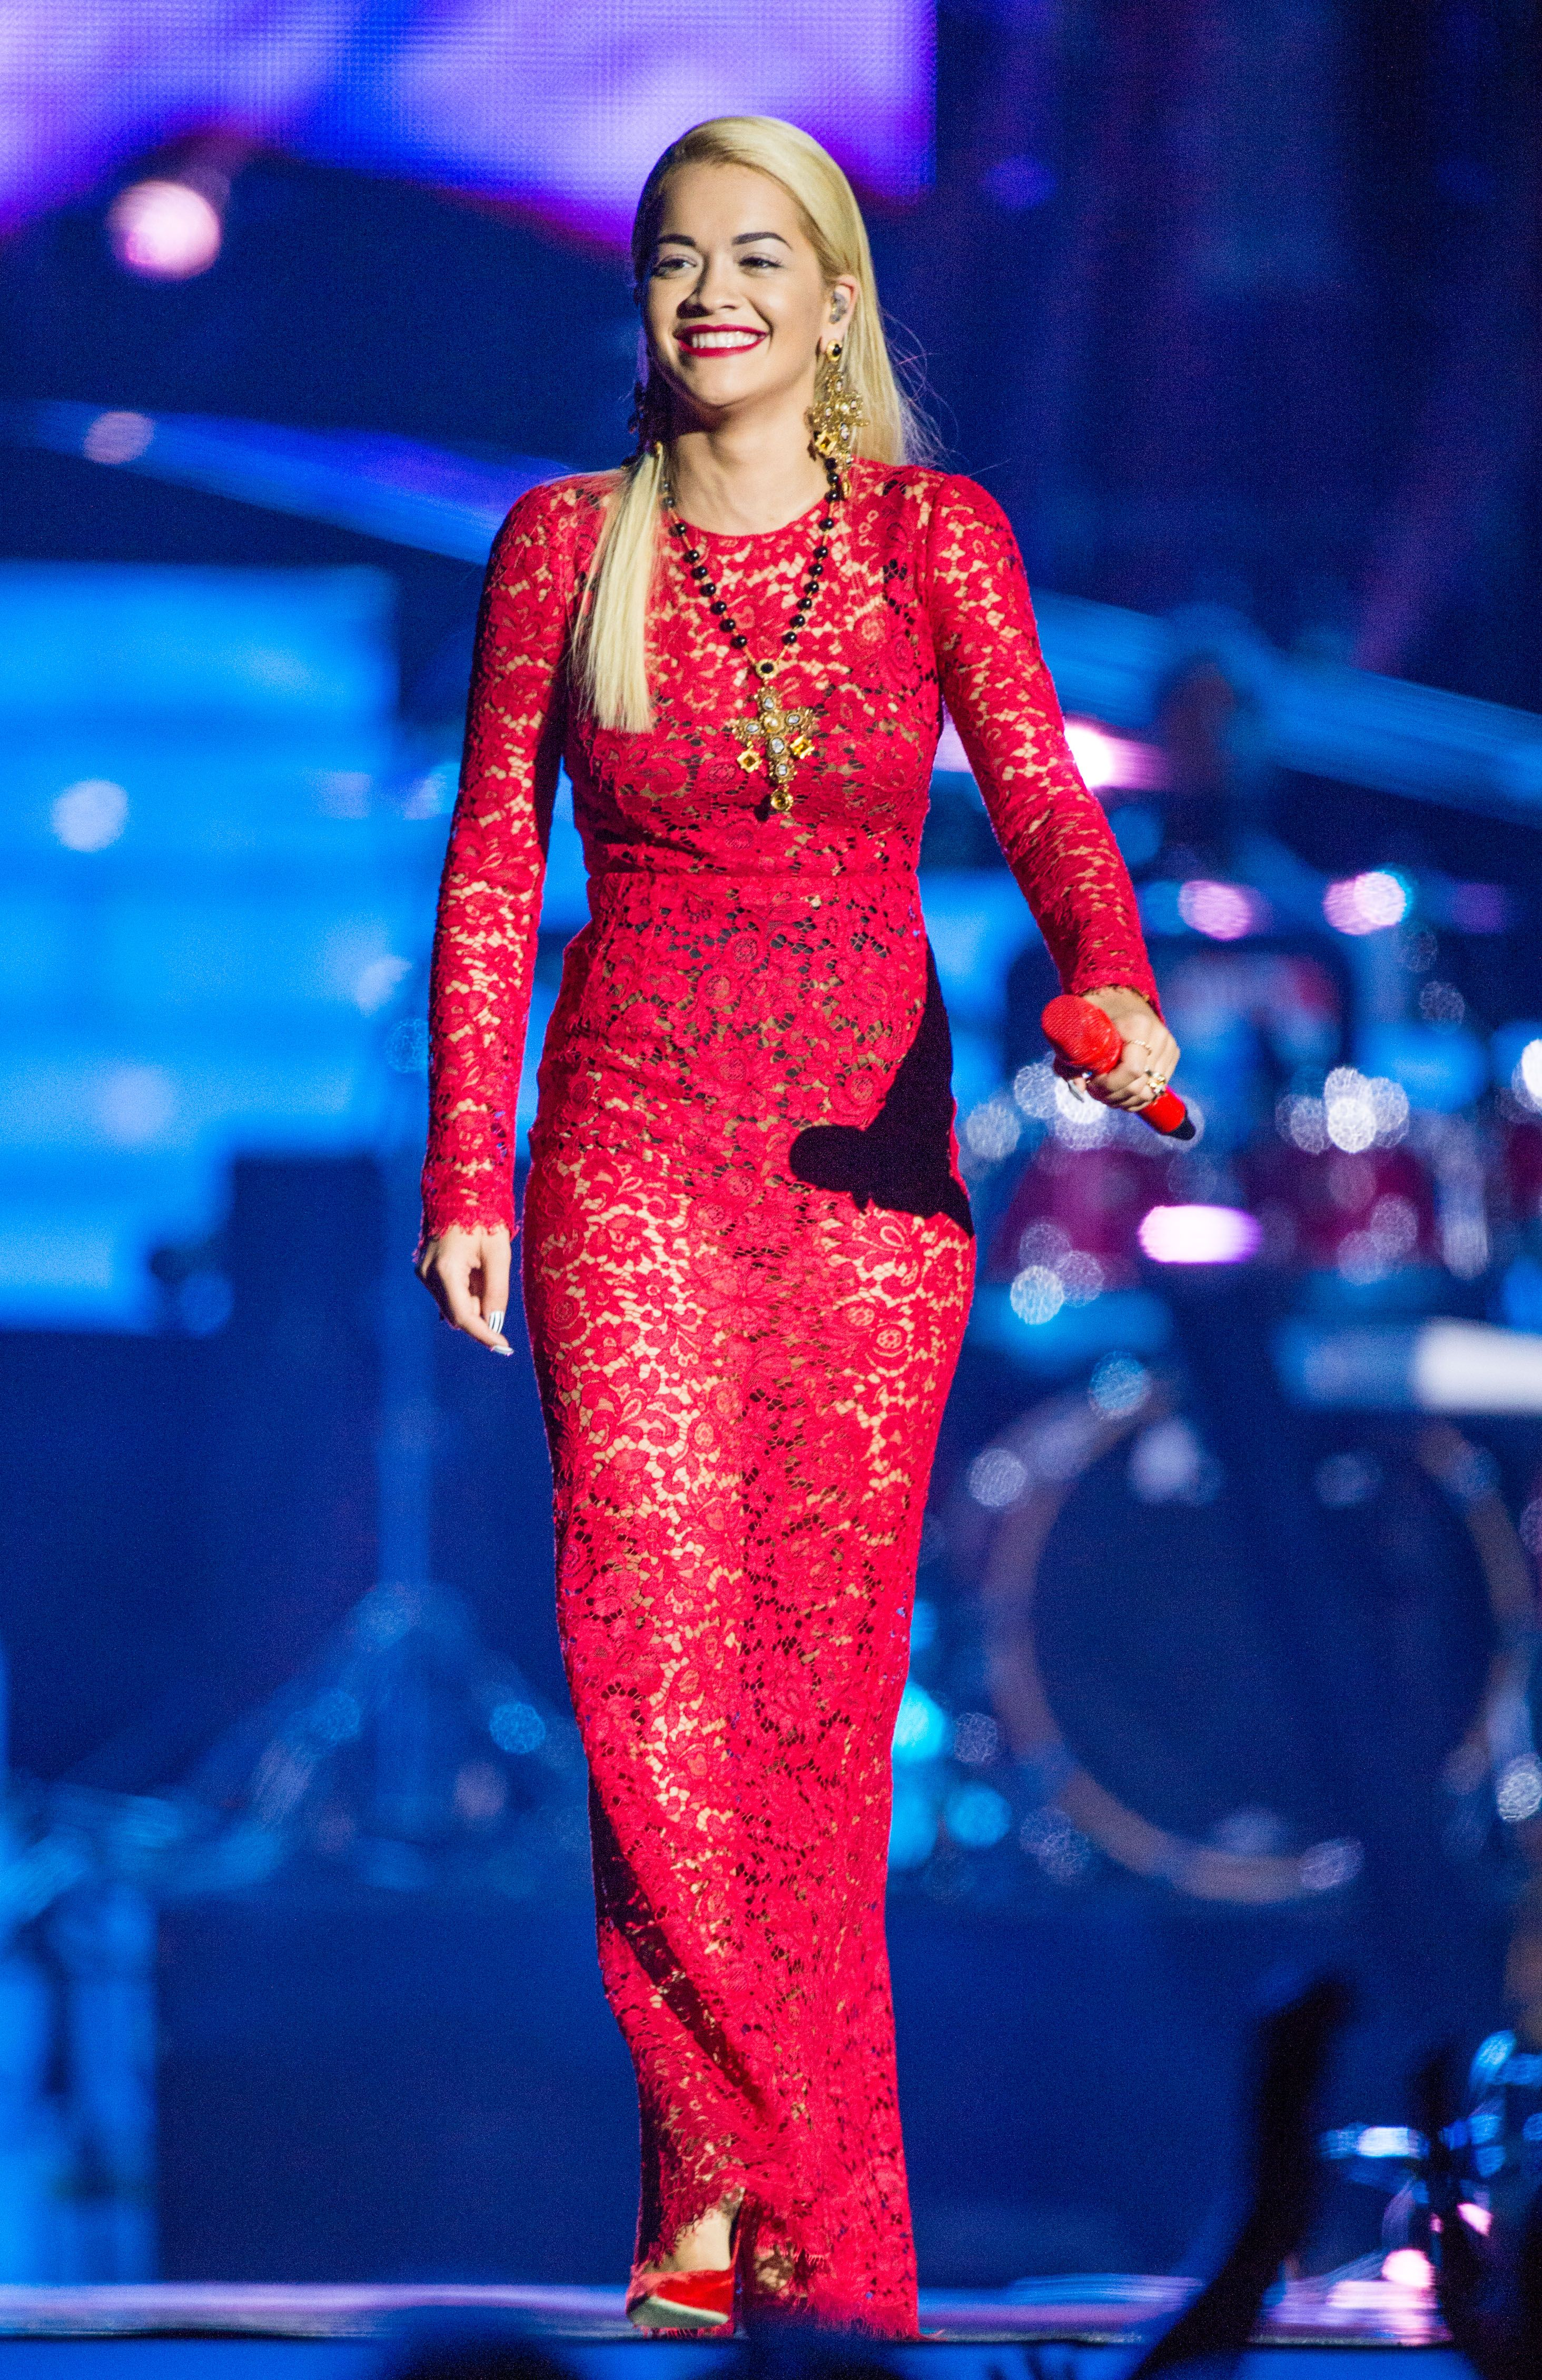 Rita Ora wearing Dolce&Gabbana while performing at 'Unity: A Concert For Stephen Lawrence' in aid of The Stephen Lawrence Charitable Trust at the O2 Arena in London on September 29, 2013